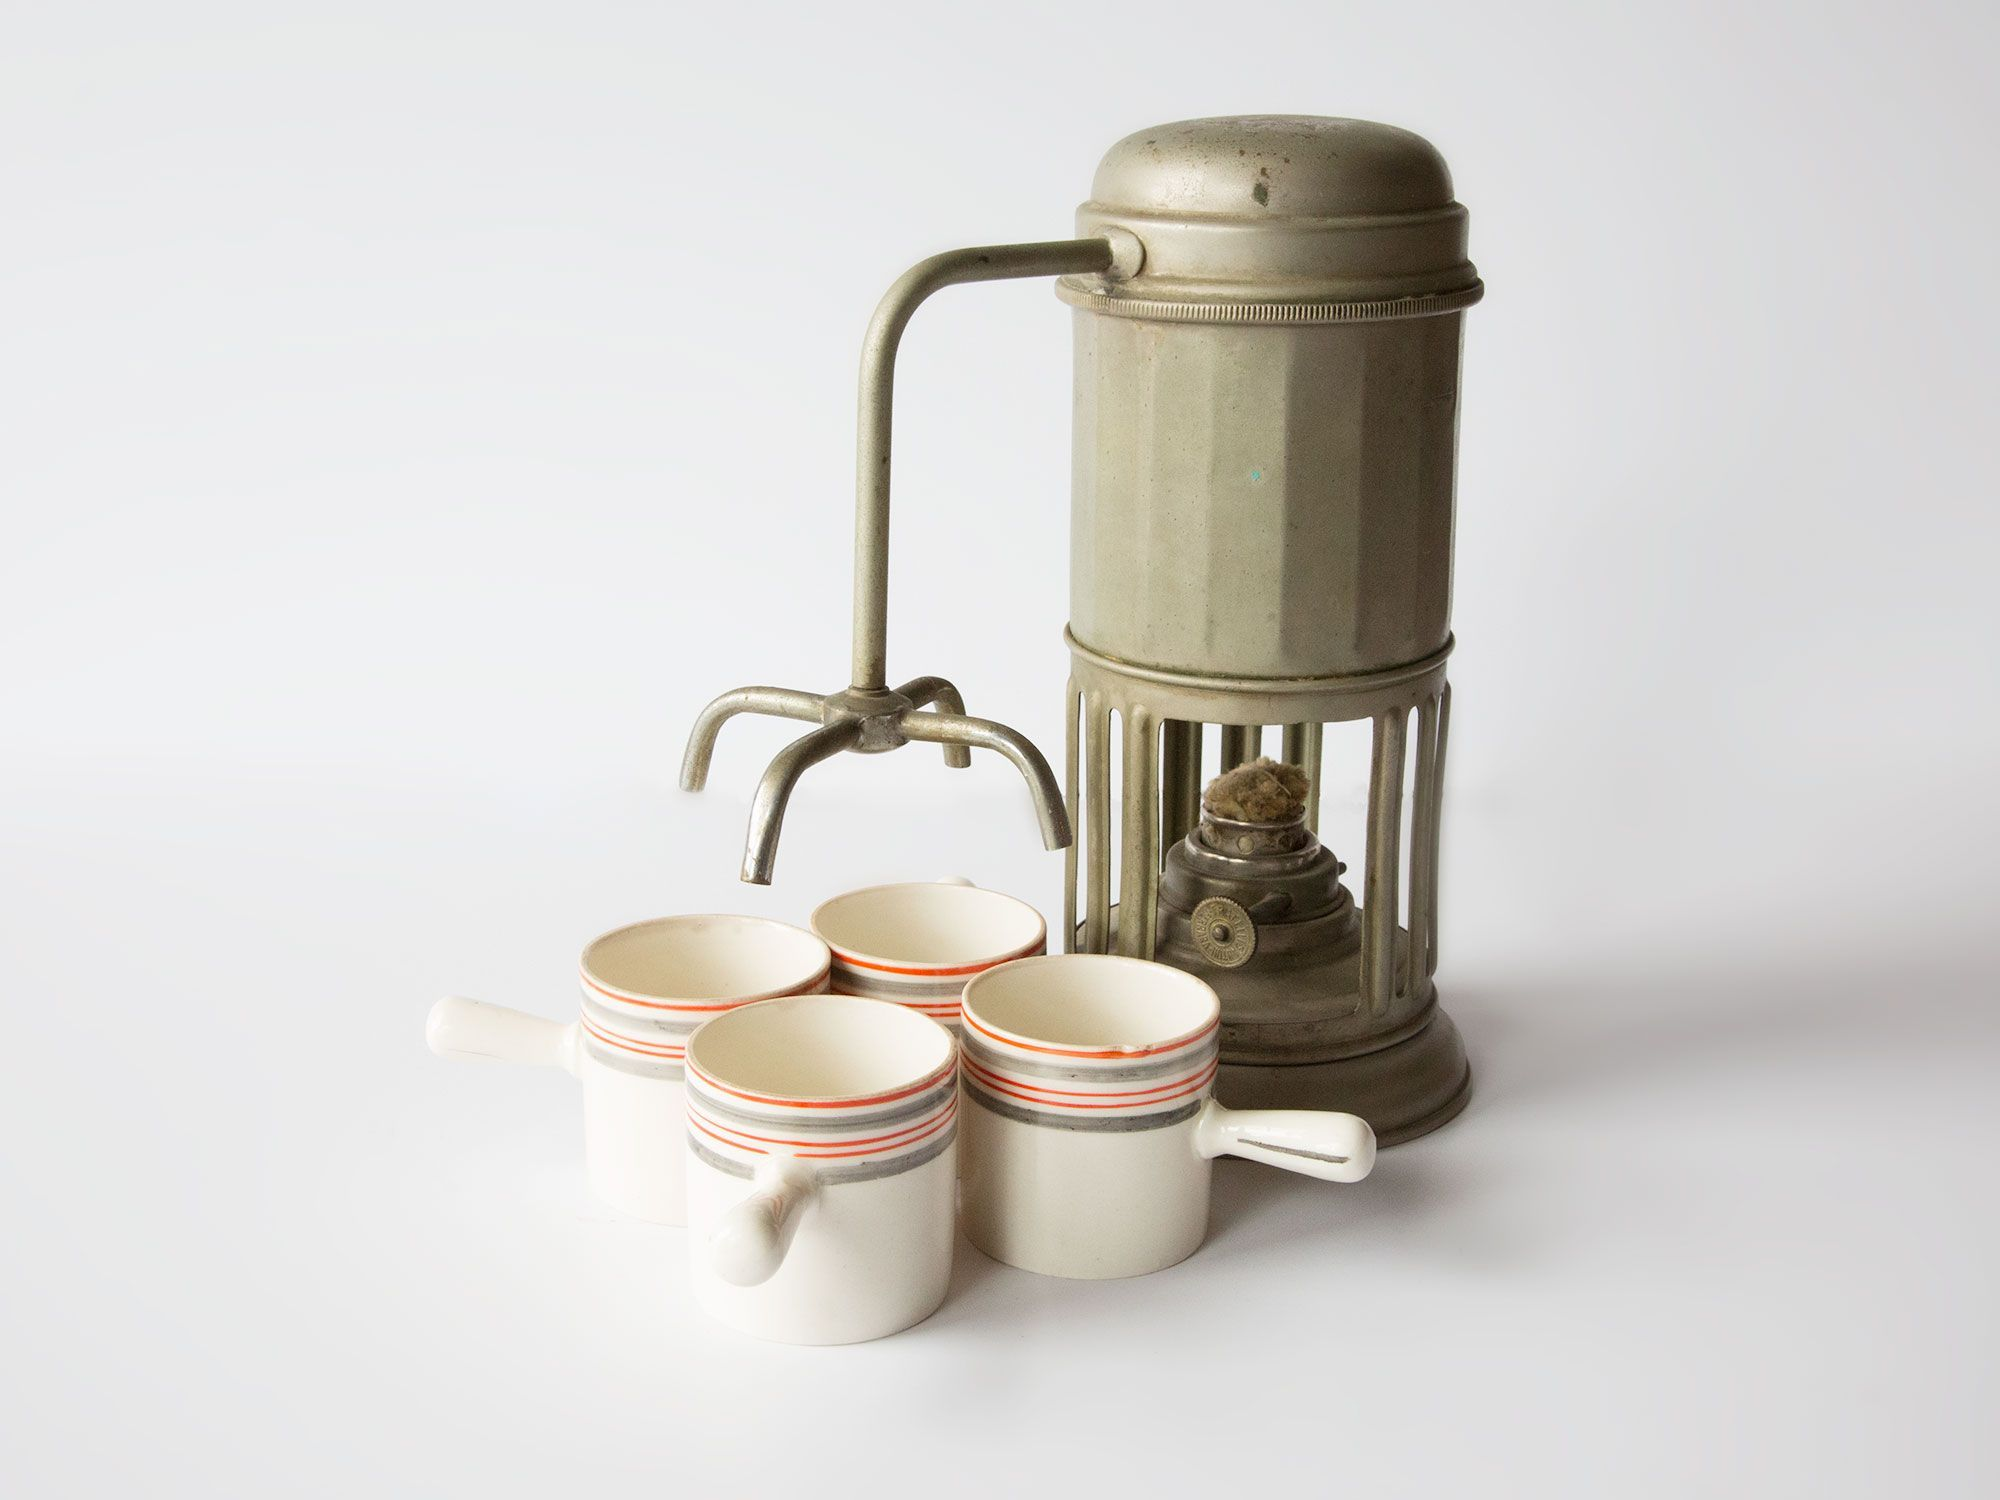 Collections John McCormick's Vintage Espresso Makers